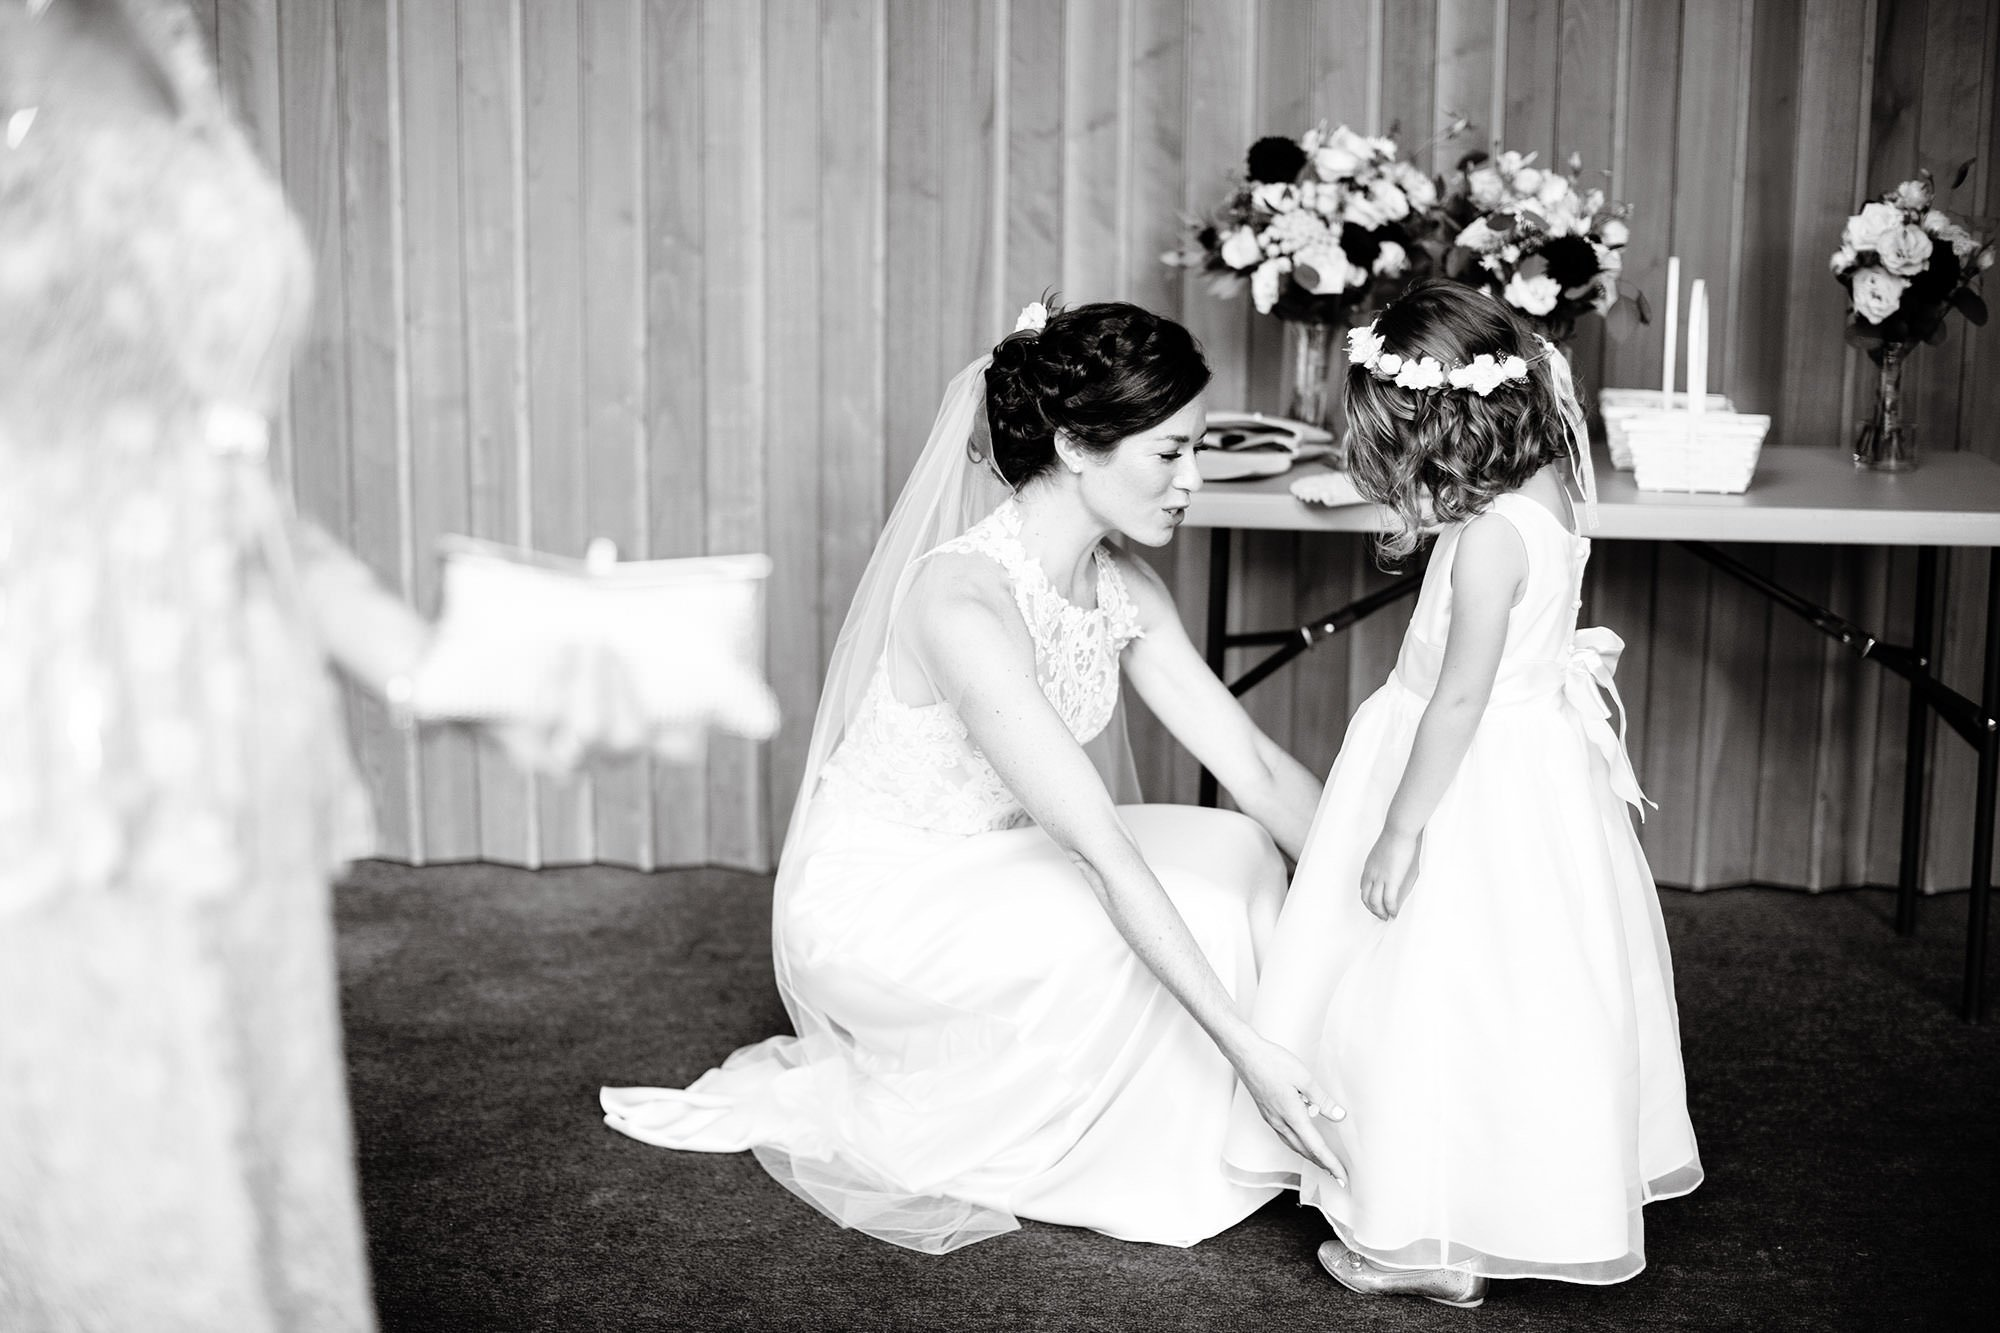 The bride looks at the dress of her flower girl prior to the Ceremony at Pilgrim Covenant Church in Lunenberg, MA